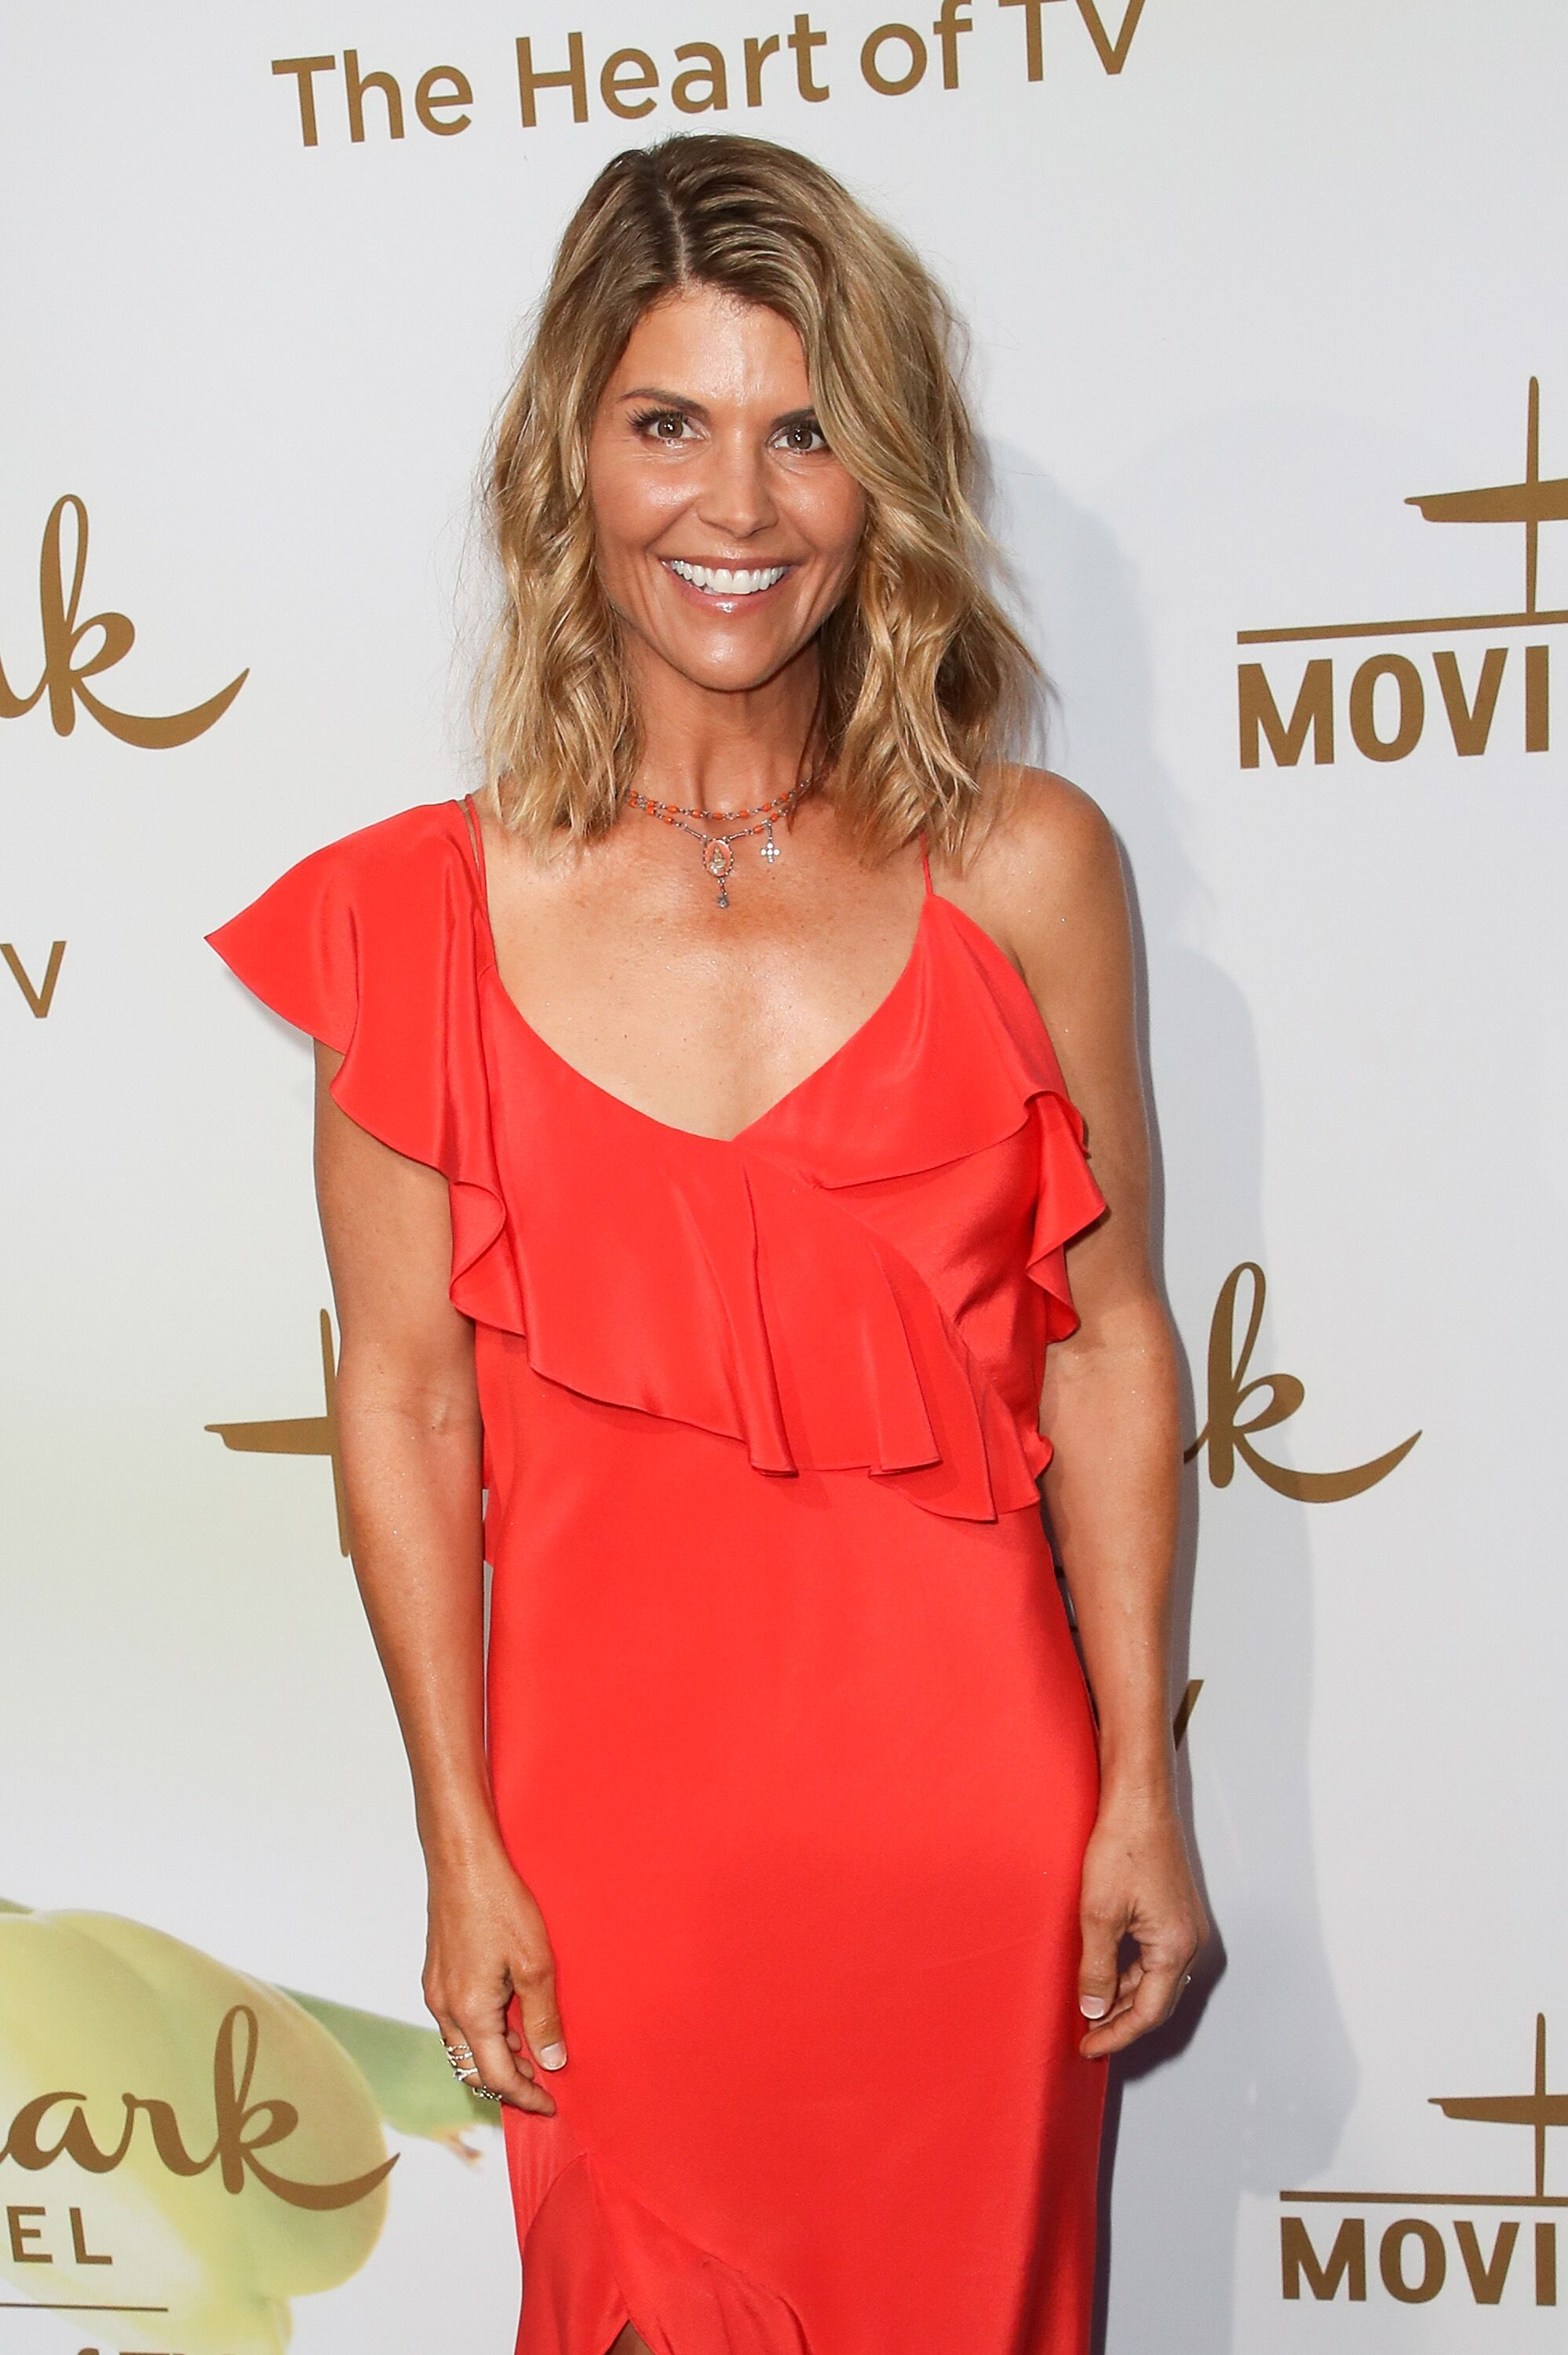 Lori Loughlin at a Hallmark event. | Source: Getty Images